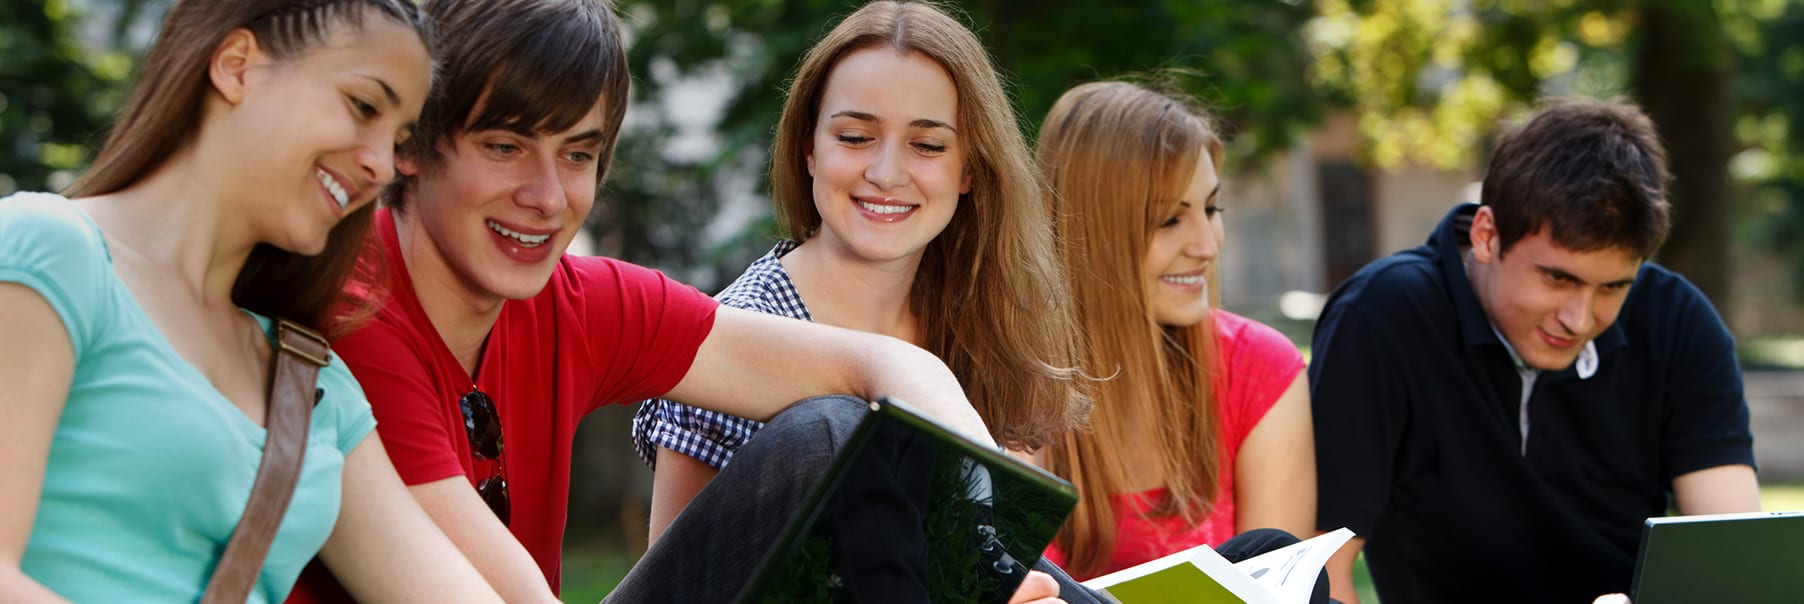 DAAD University Summertime Courses Scholarship for Foreign Trainees and Graduates 2018/2019